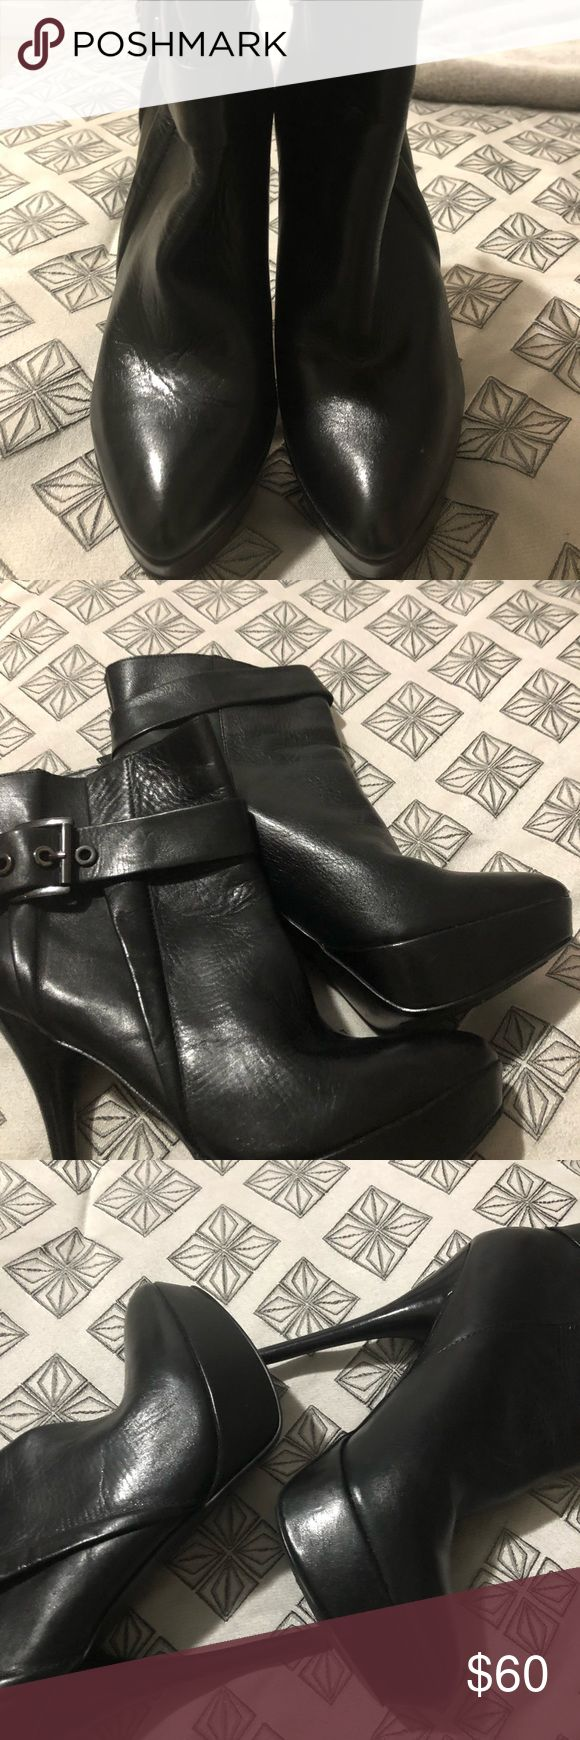 HOT Aldo shoes Hot NEW ALDO Ankle boots ‼️ These shoes extraordinary effects, set on a stiletto heel also with a belt wrap around the ankle.   Soft leather and with a  3 1/2 to 4 inch heel. These are very comfortable they sat in my closet so It's time to pass them on.    No box No receipt  And no trades Will accept a decent offer.. Please  nothing under 45 Aldo Shoes Ankle Boots & Booties